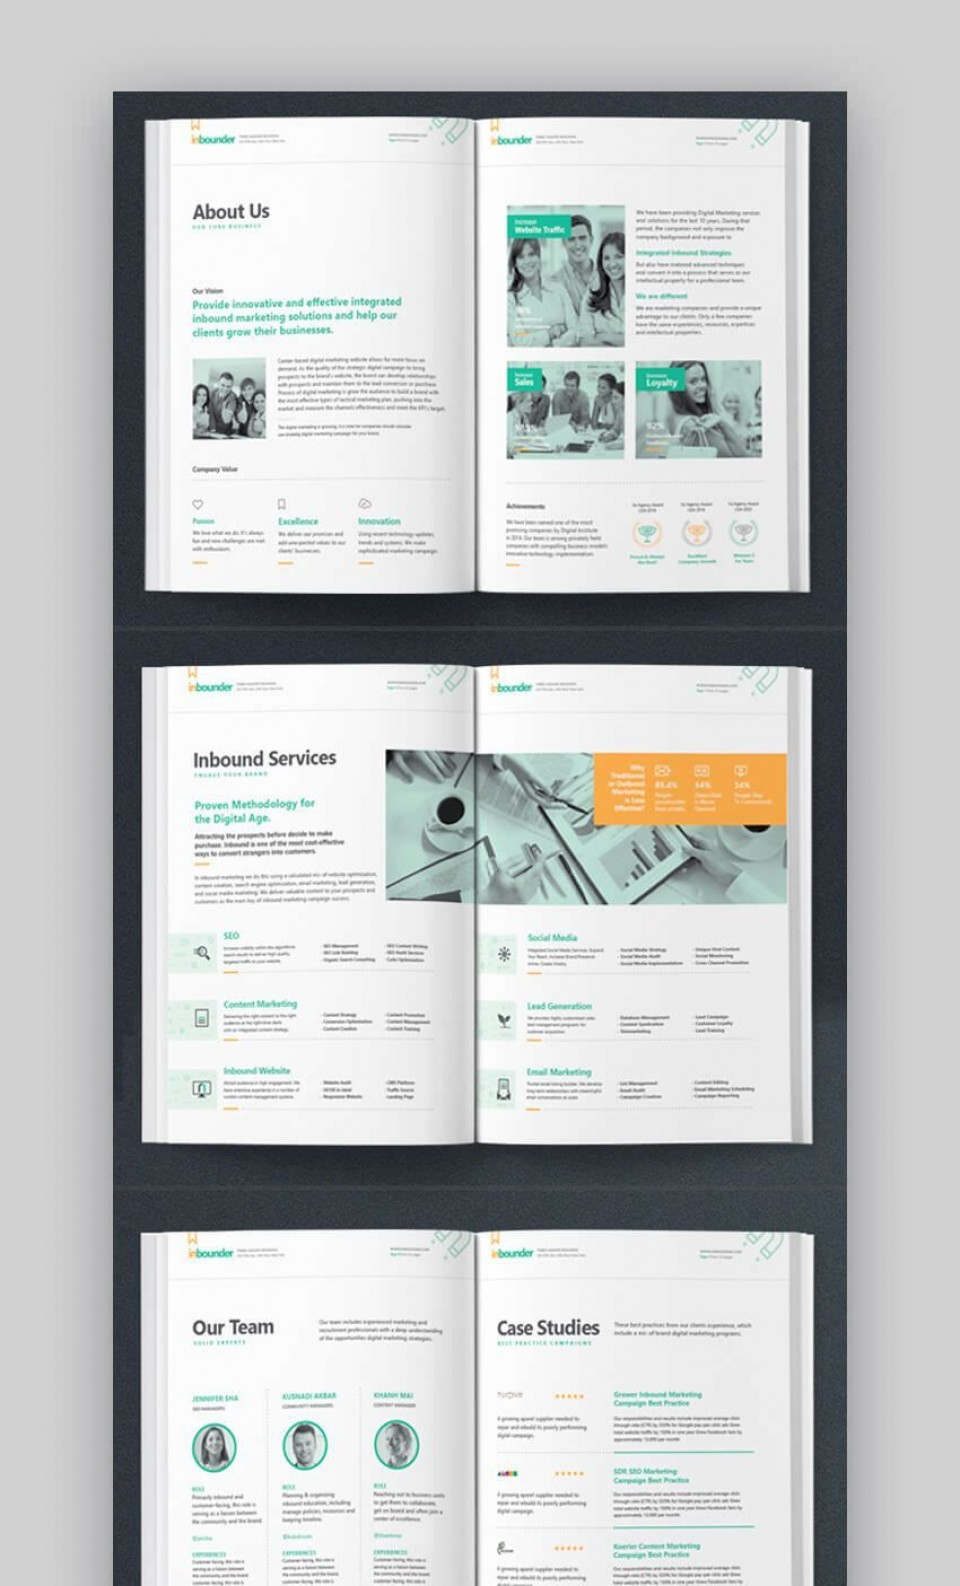 002 Outstanding Social Media Proposal Template 2019 High Resolution 960